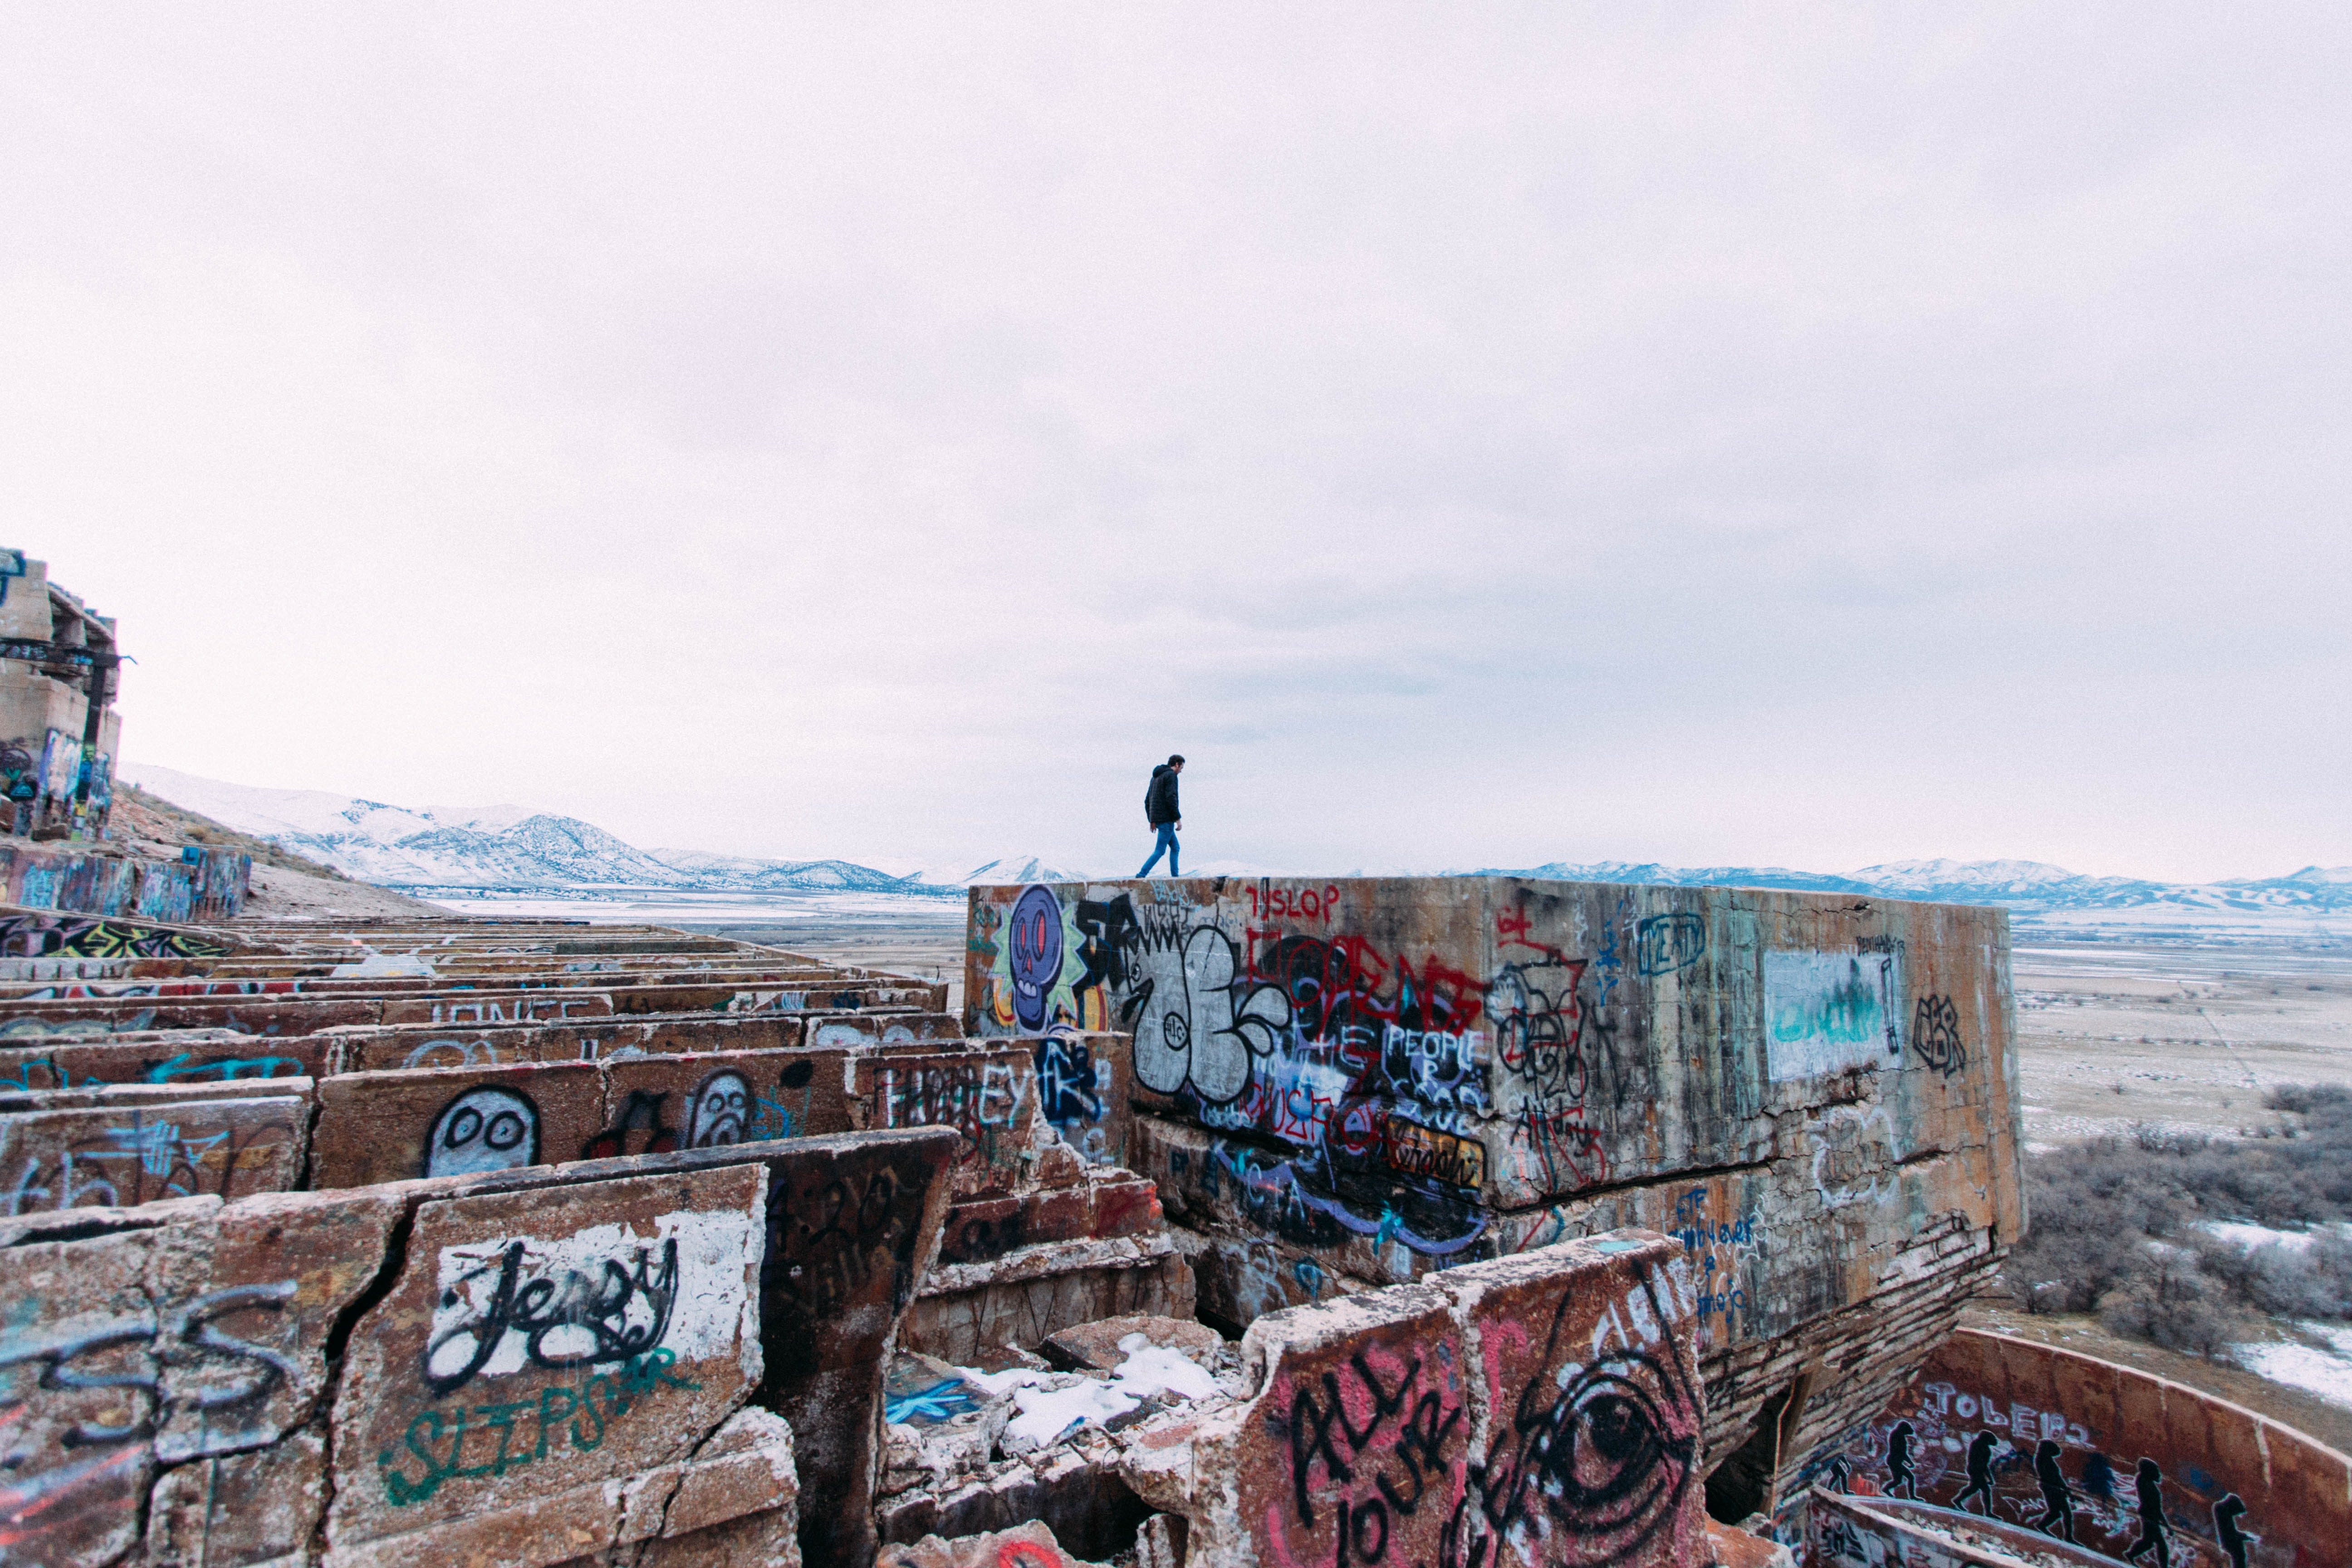 Person walking on concrete structure covered in graffiti in isolated region